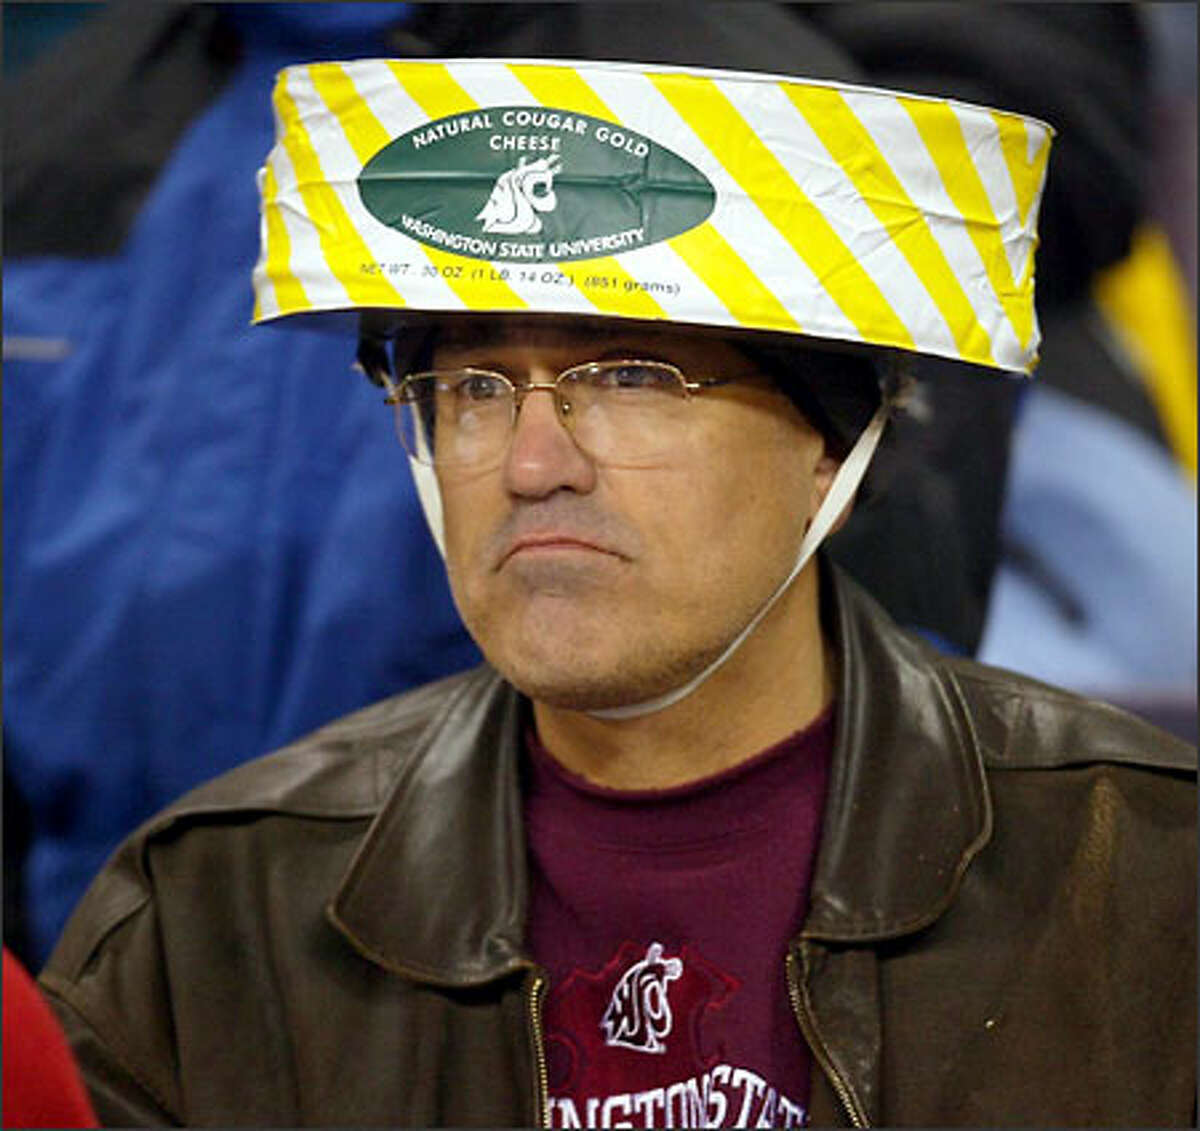 A Cougar fan's version of the Cheesehead fan--The Cougar Gold Cheesehead fan.